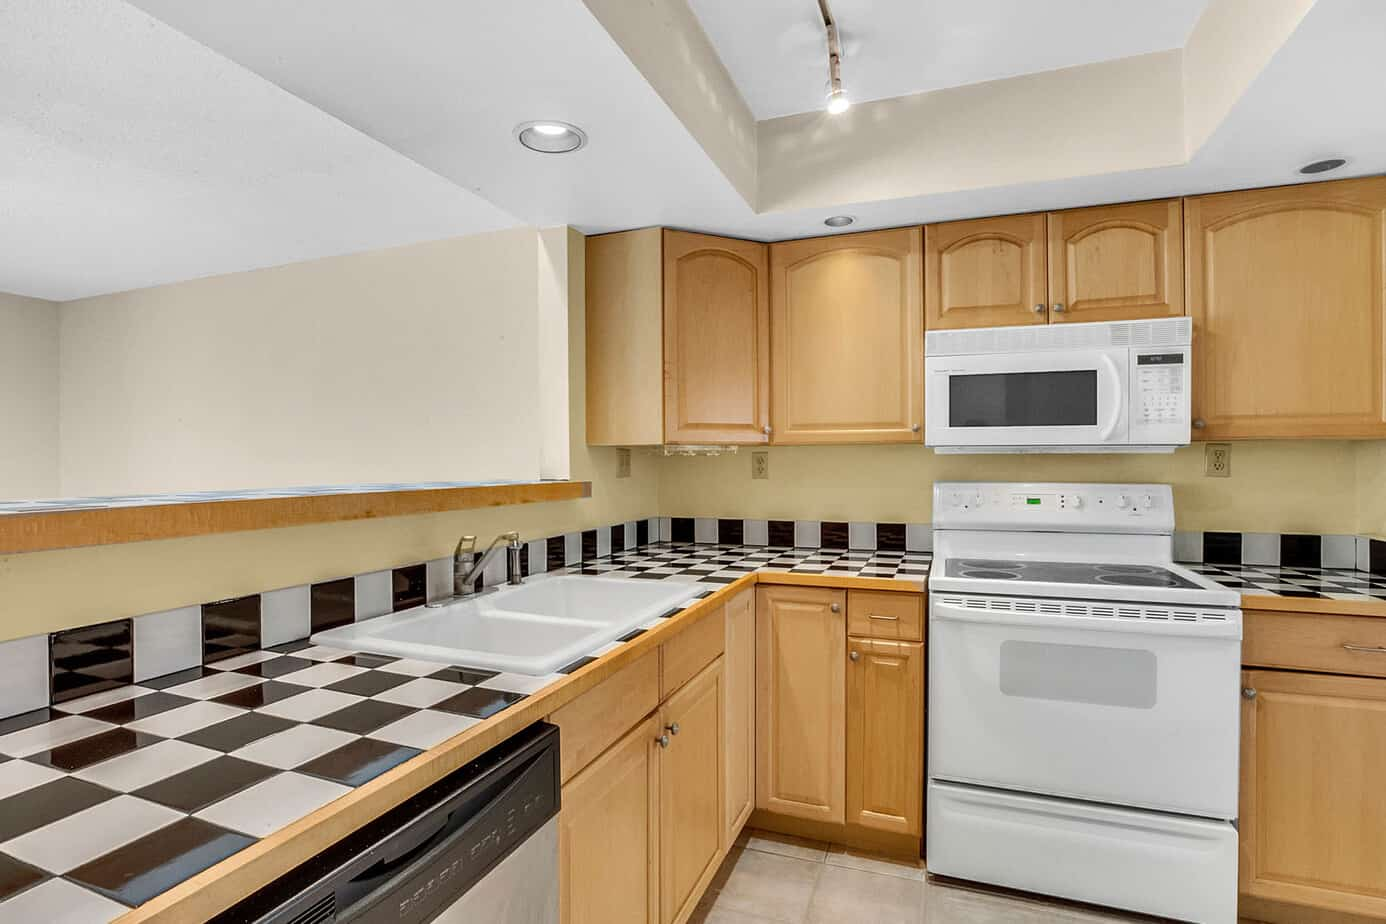 kitchen at 408 S Arrawana Ave Tampa FL 33609 with tan cabinets and checkered tile countertops